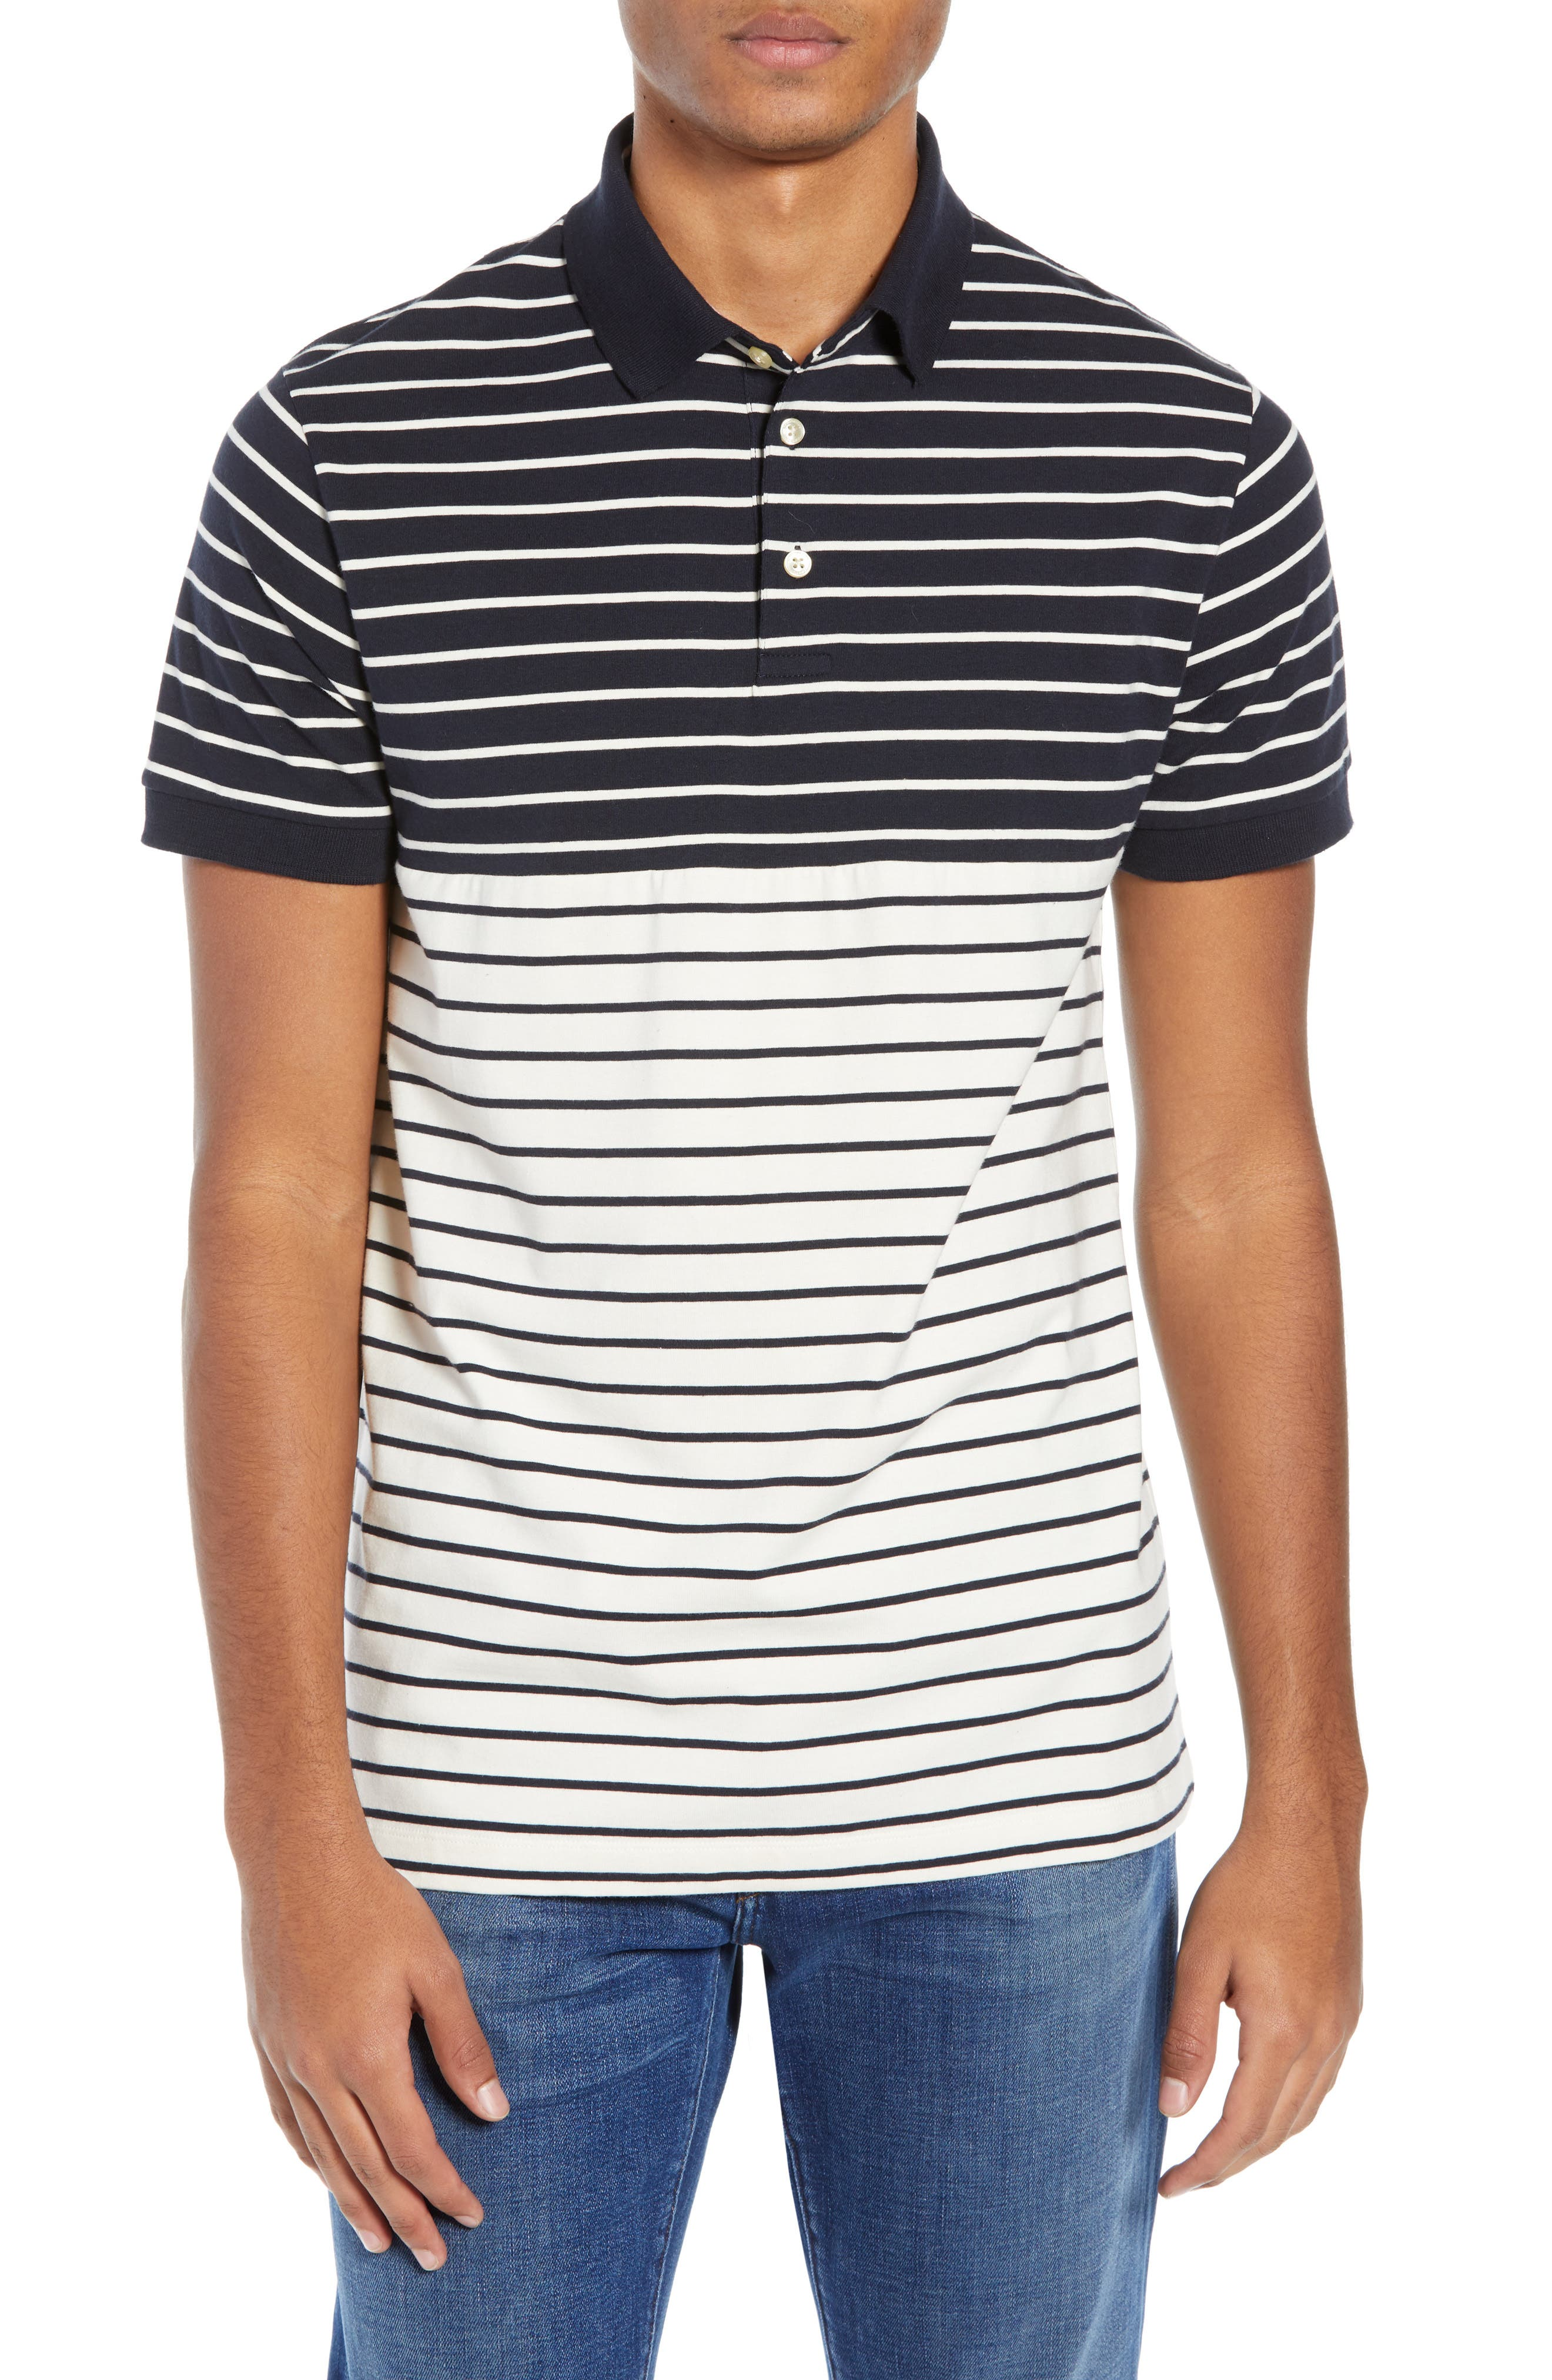 FRENCH CONNECTION Tim Regular Fit Stripe Polo, Main, color, UTILITY BLUE CREAM